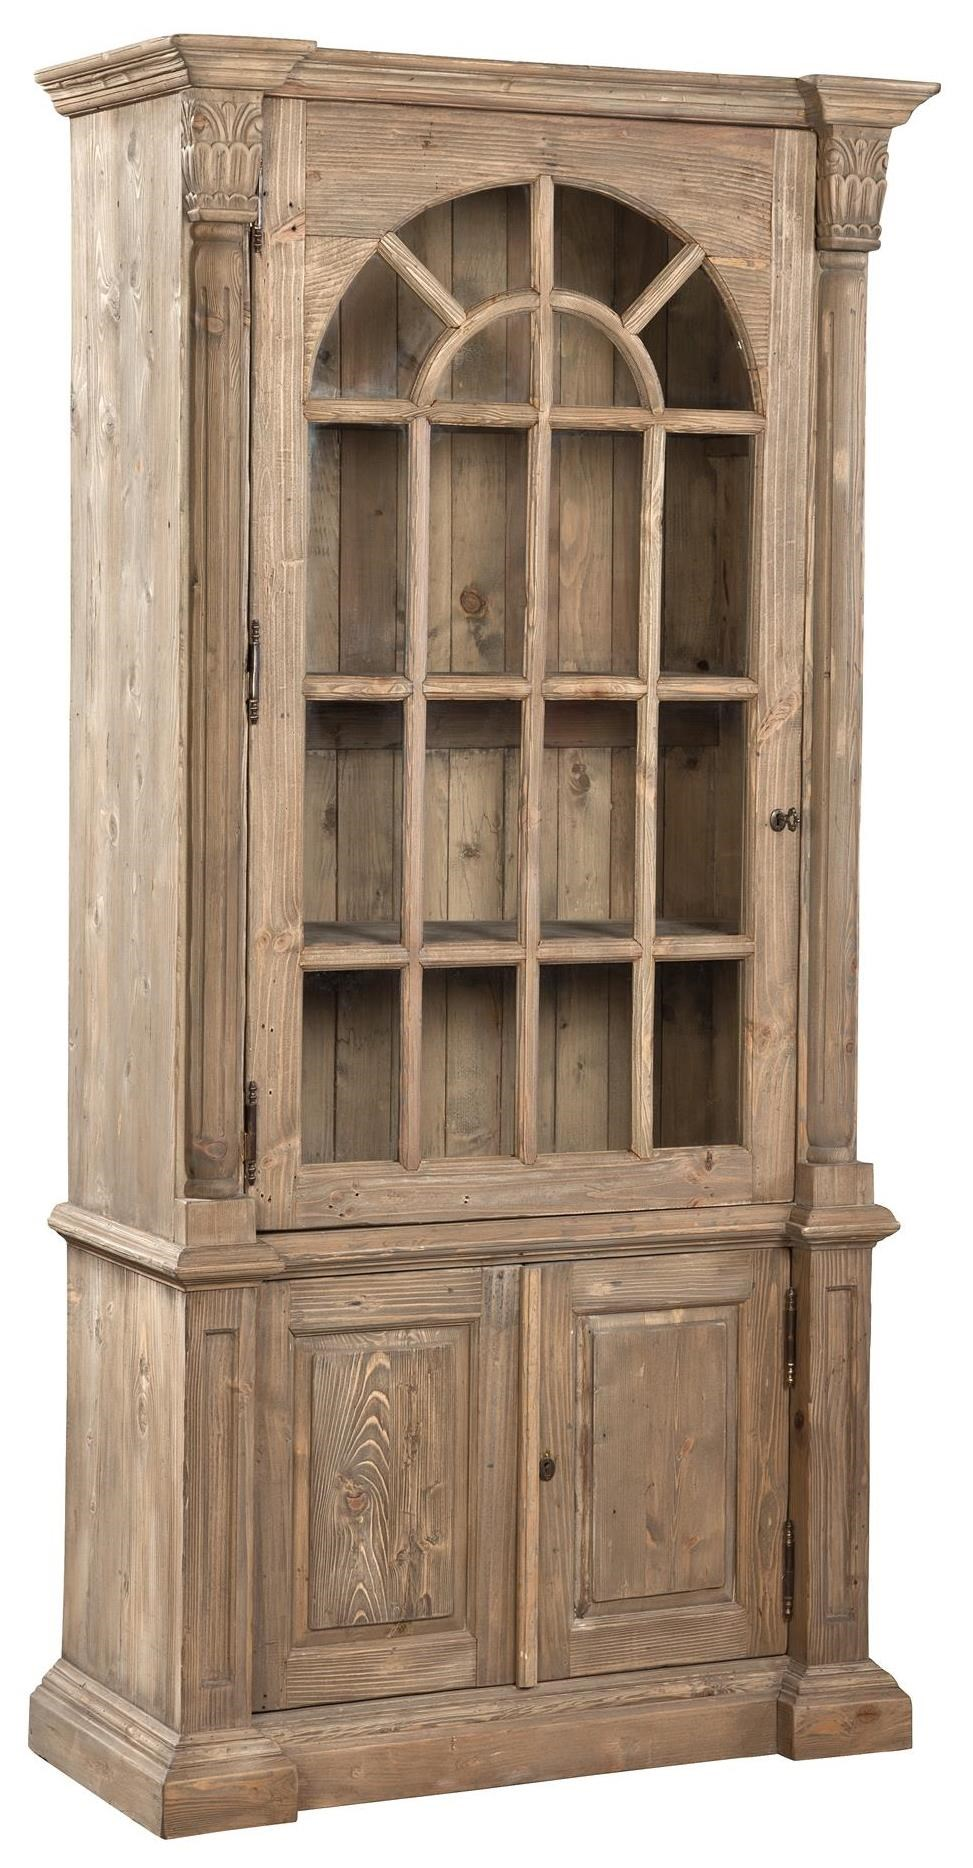 Accents Arched Pine Bookcase